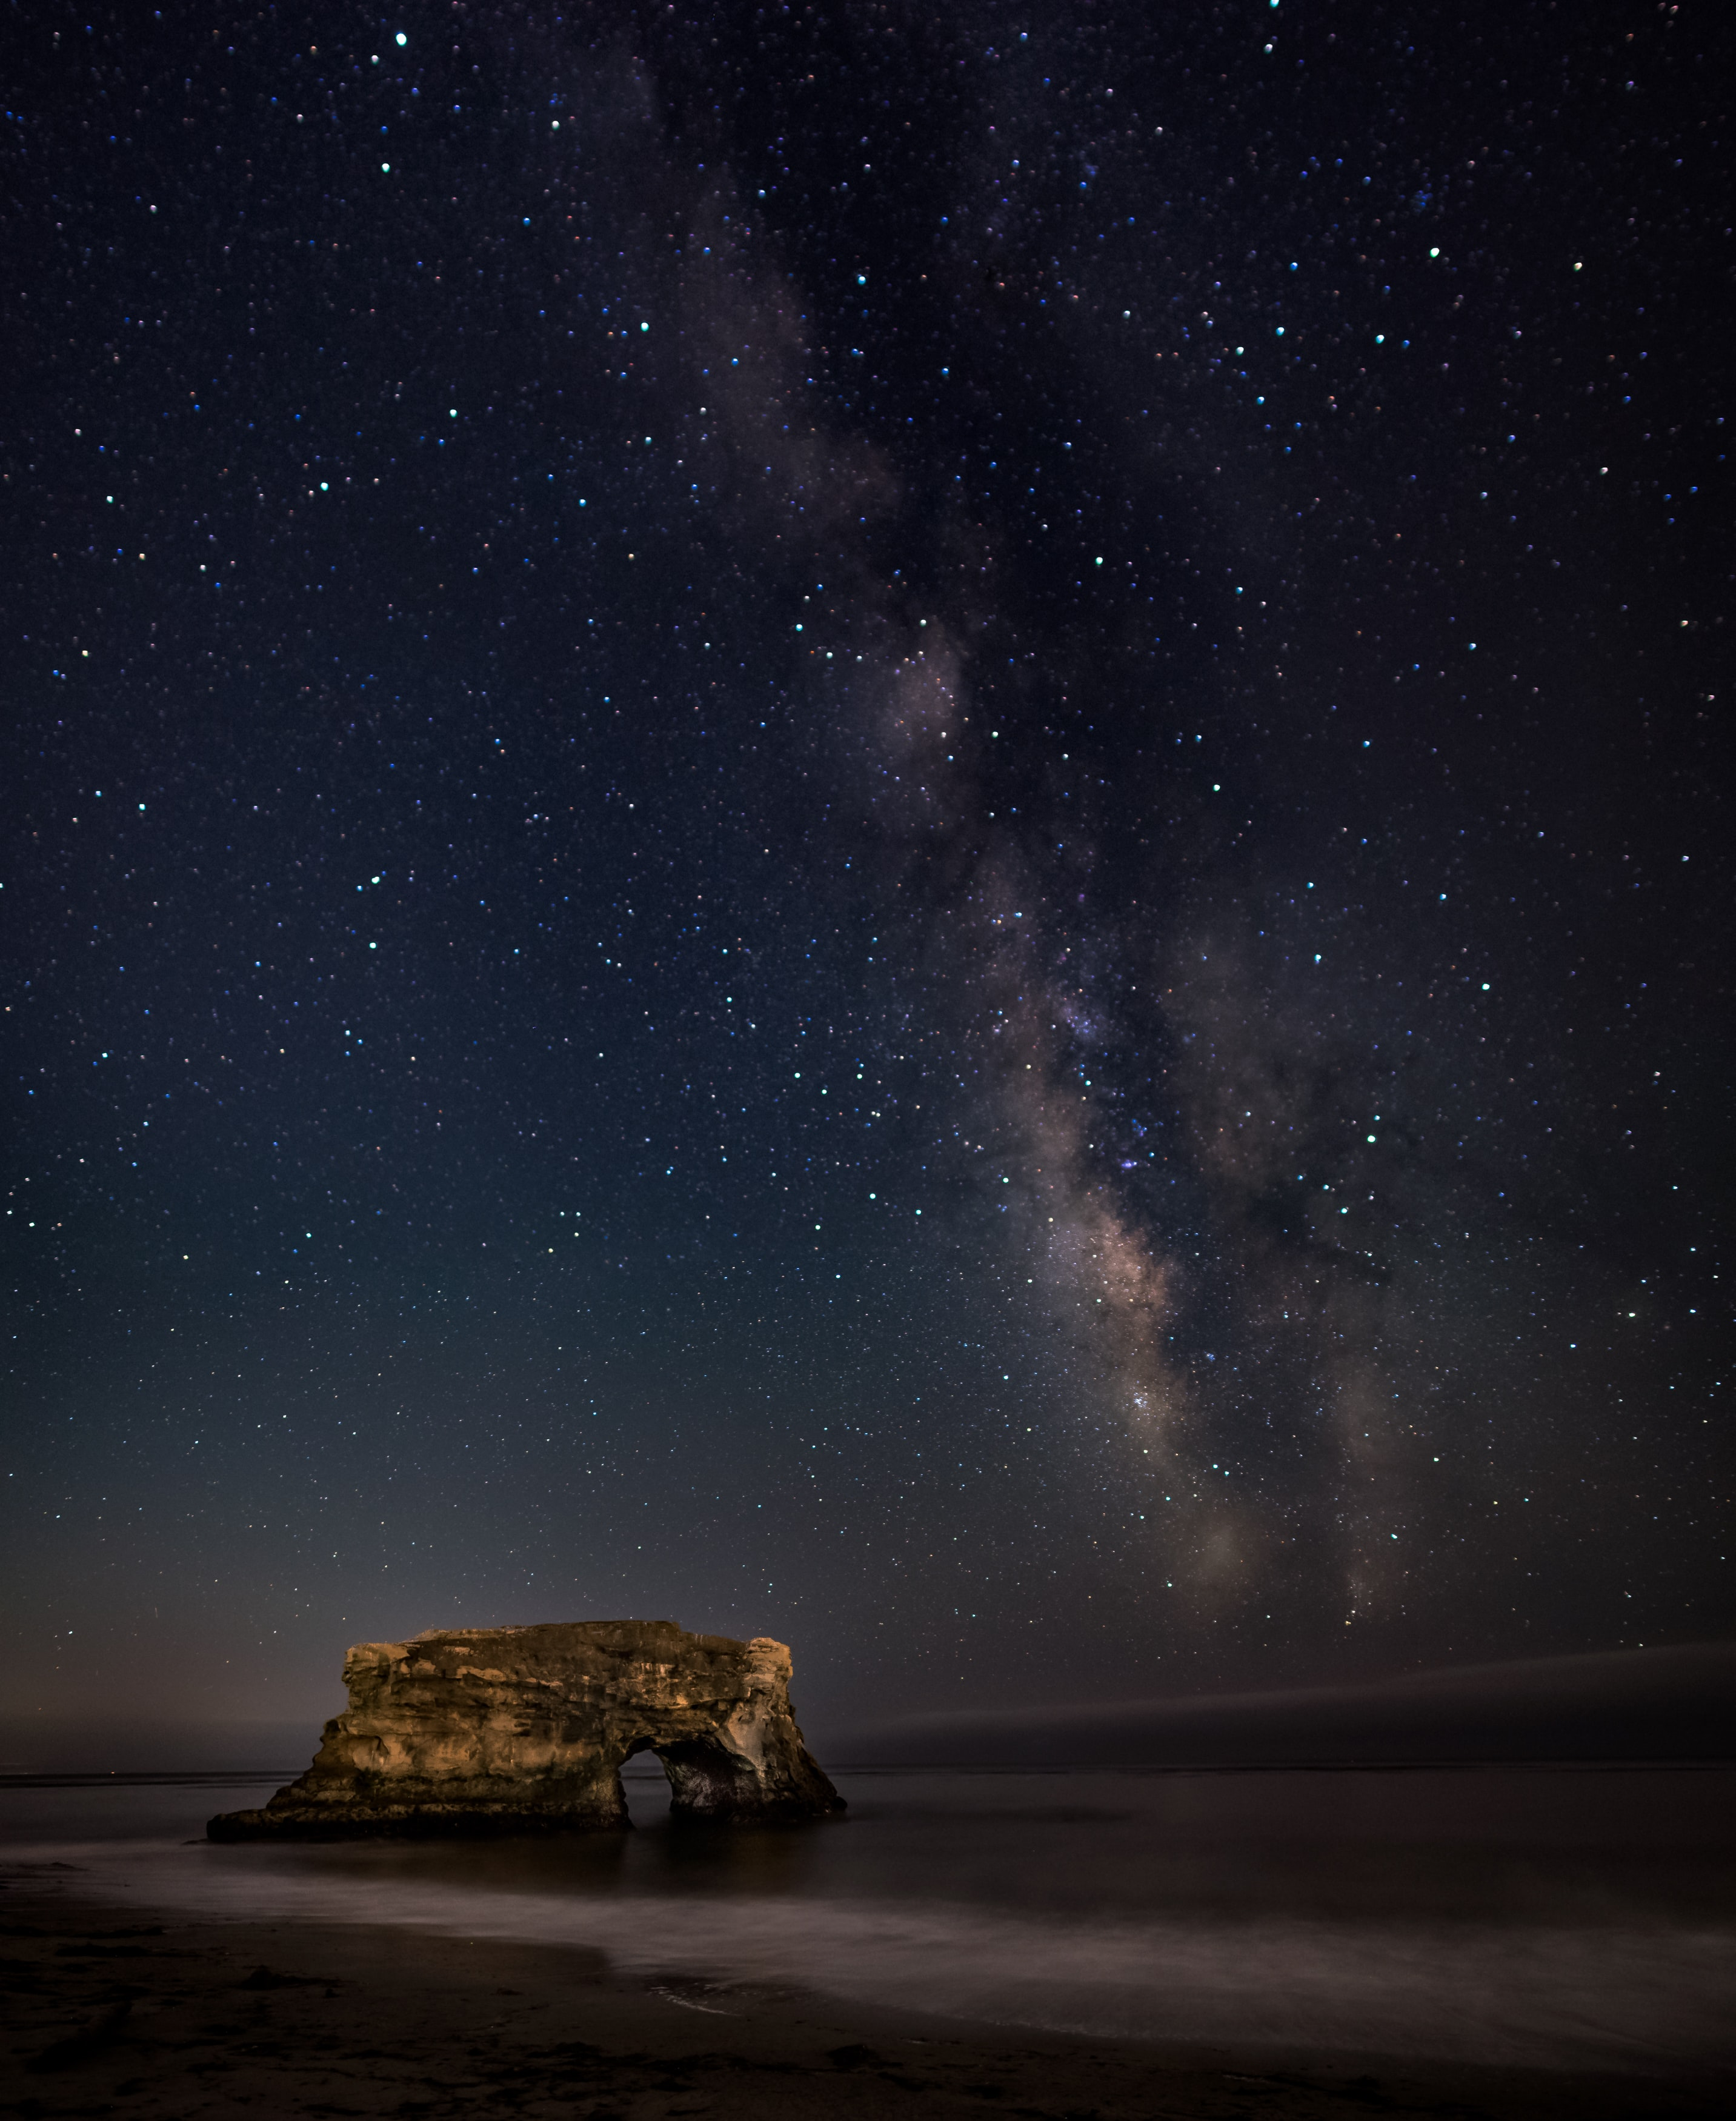 brown rock formation on body of water during nighttime